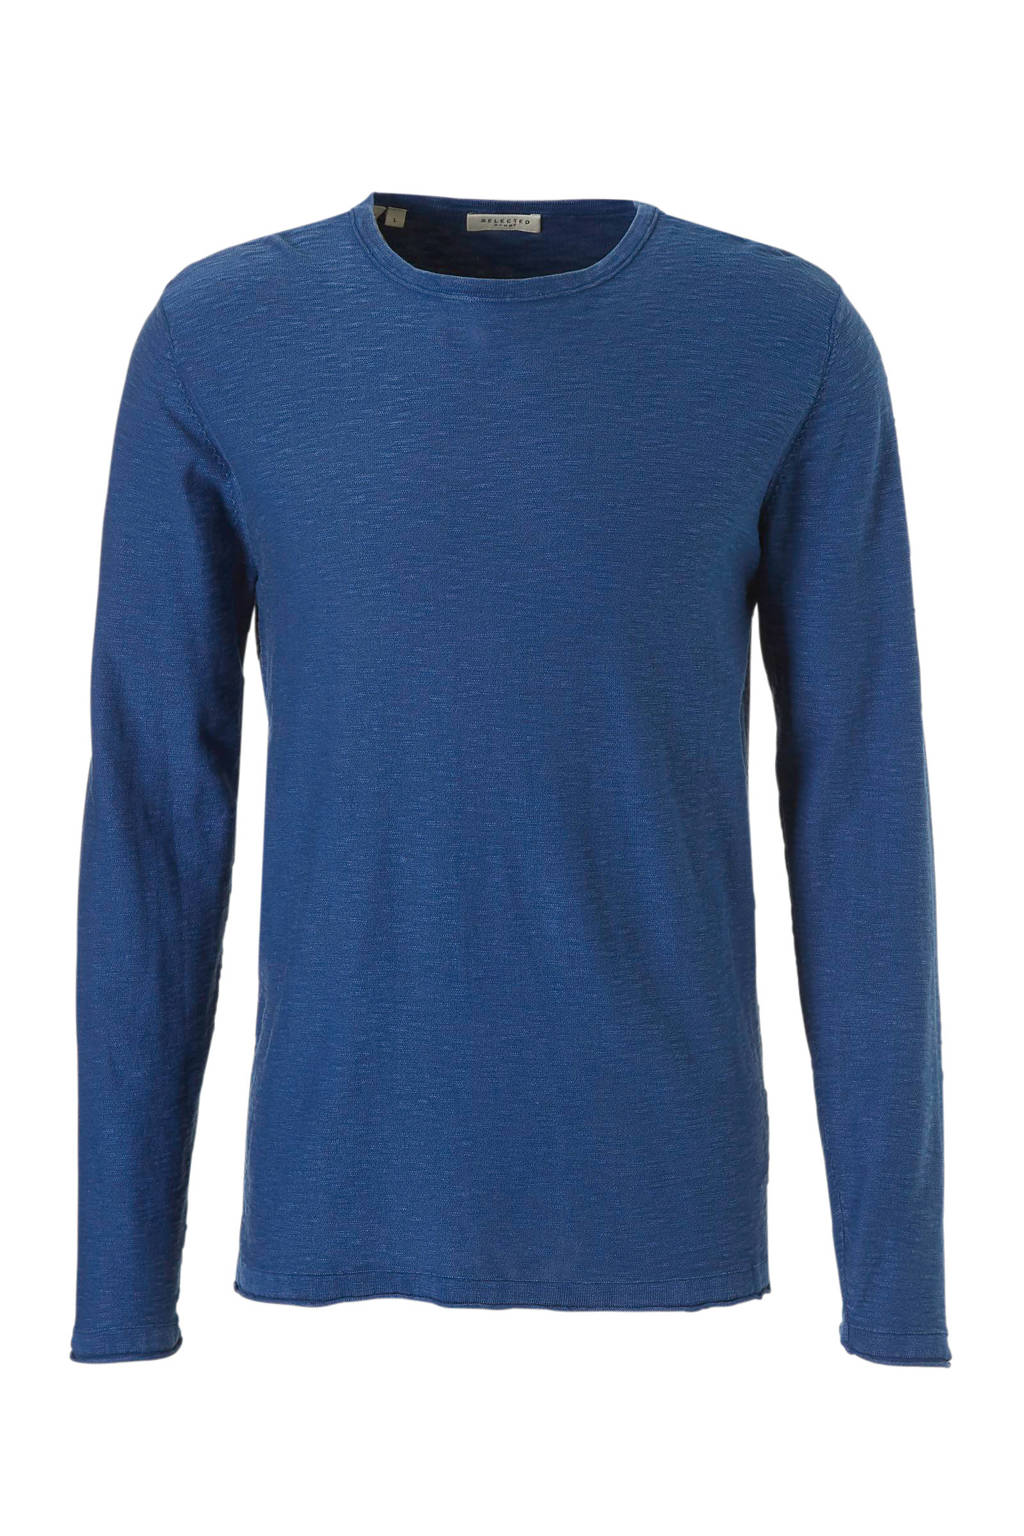 SELECTED HOMME trui, Donkerblauw